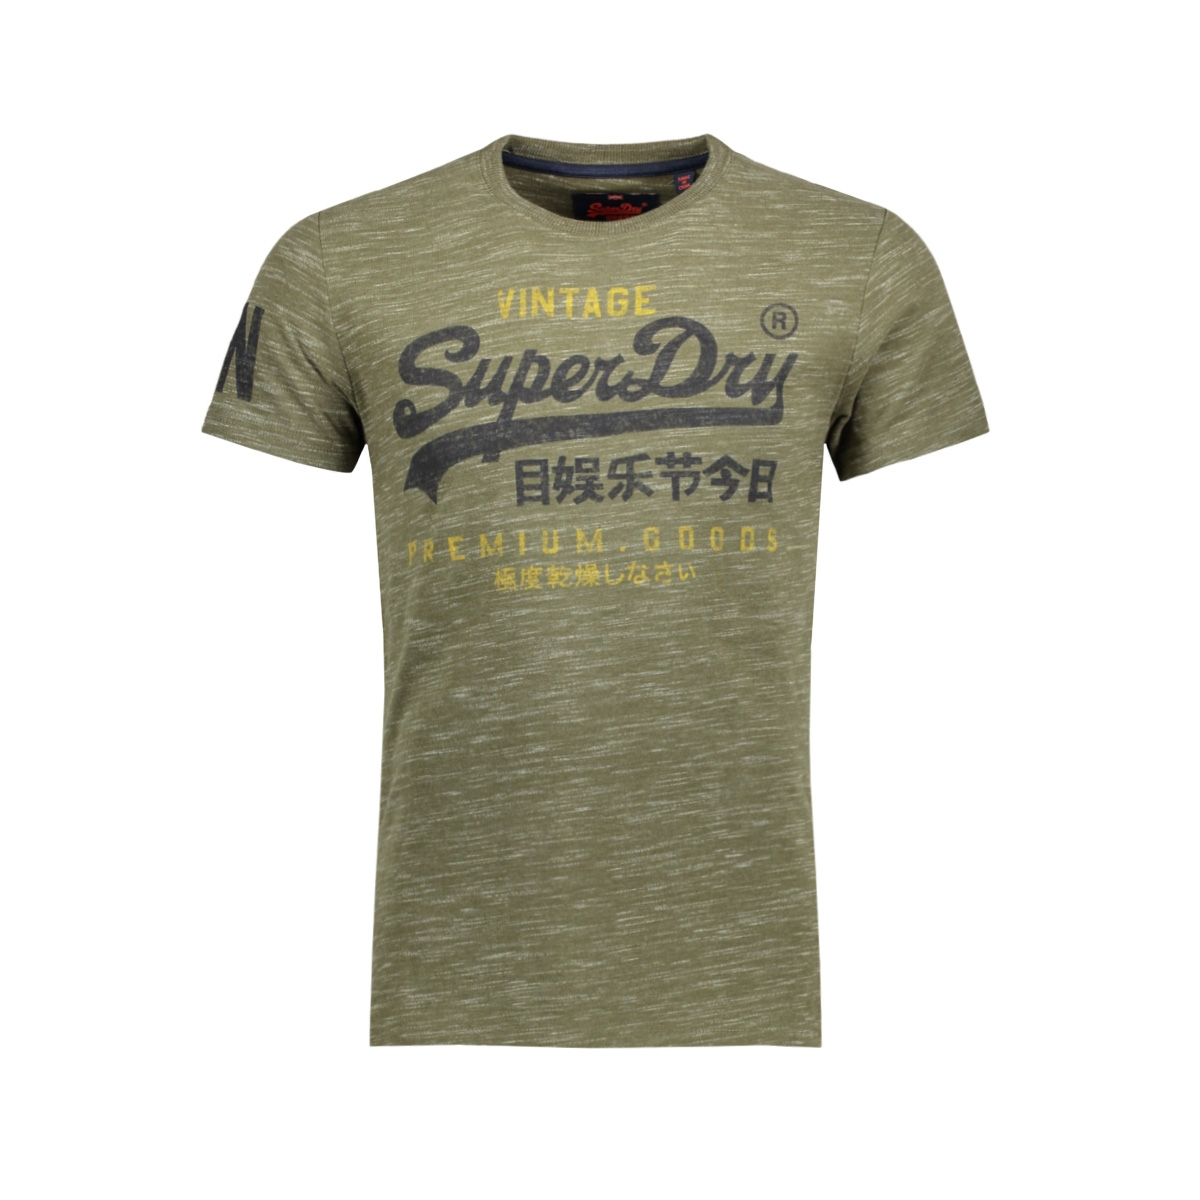 m10002pp premium goods duo tee superdry t-shirt space dye grit fh7